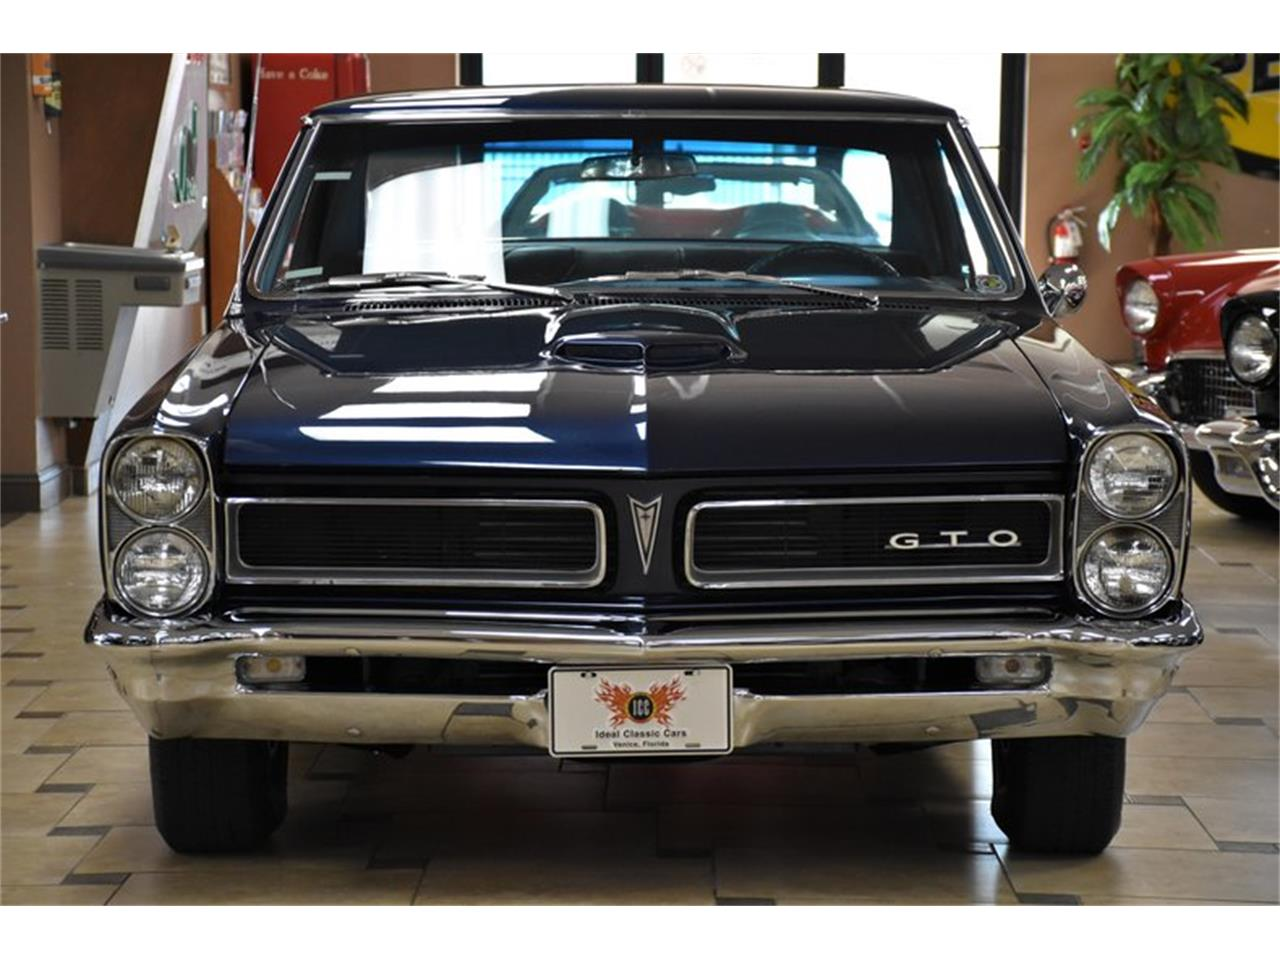 Large Picture of Classic '65 GTO Offered by Ideal Classic Cars - Q6O3